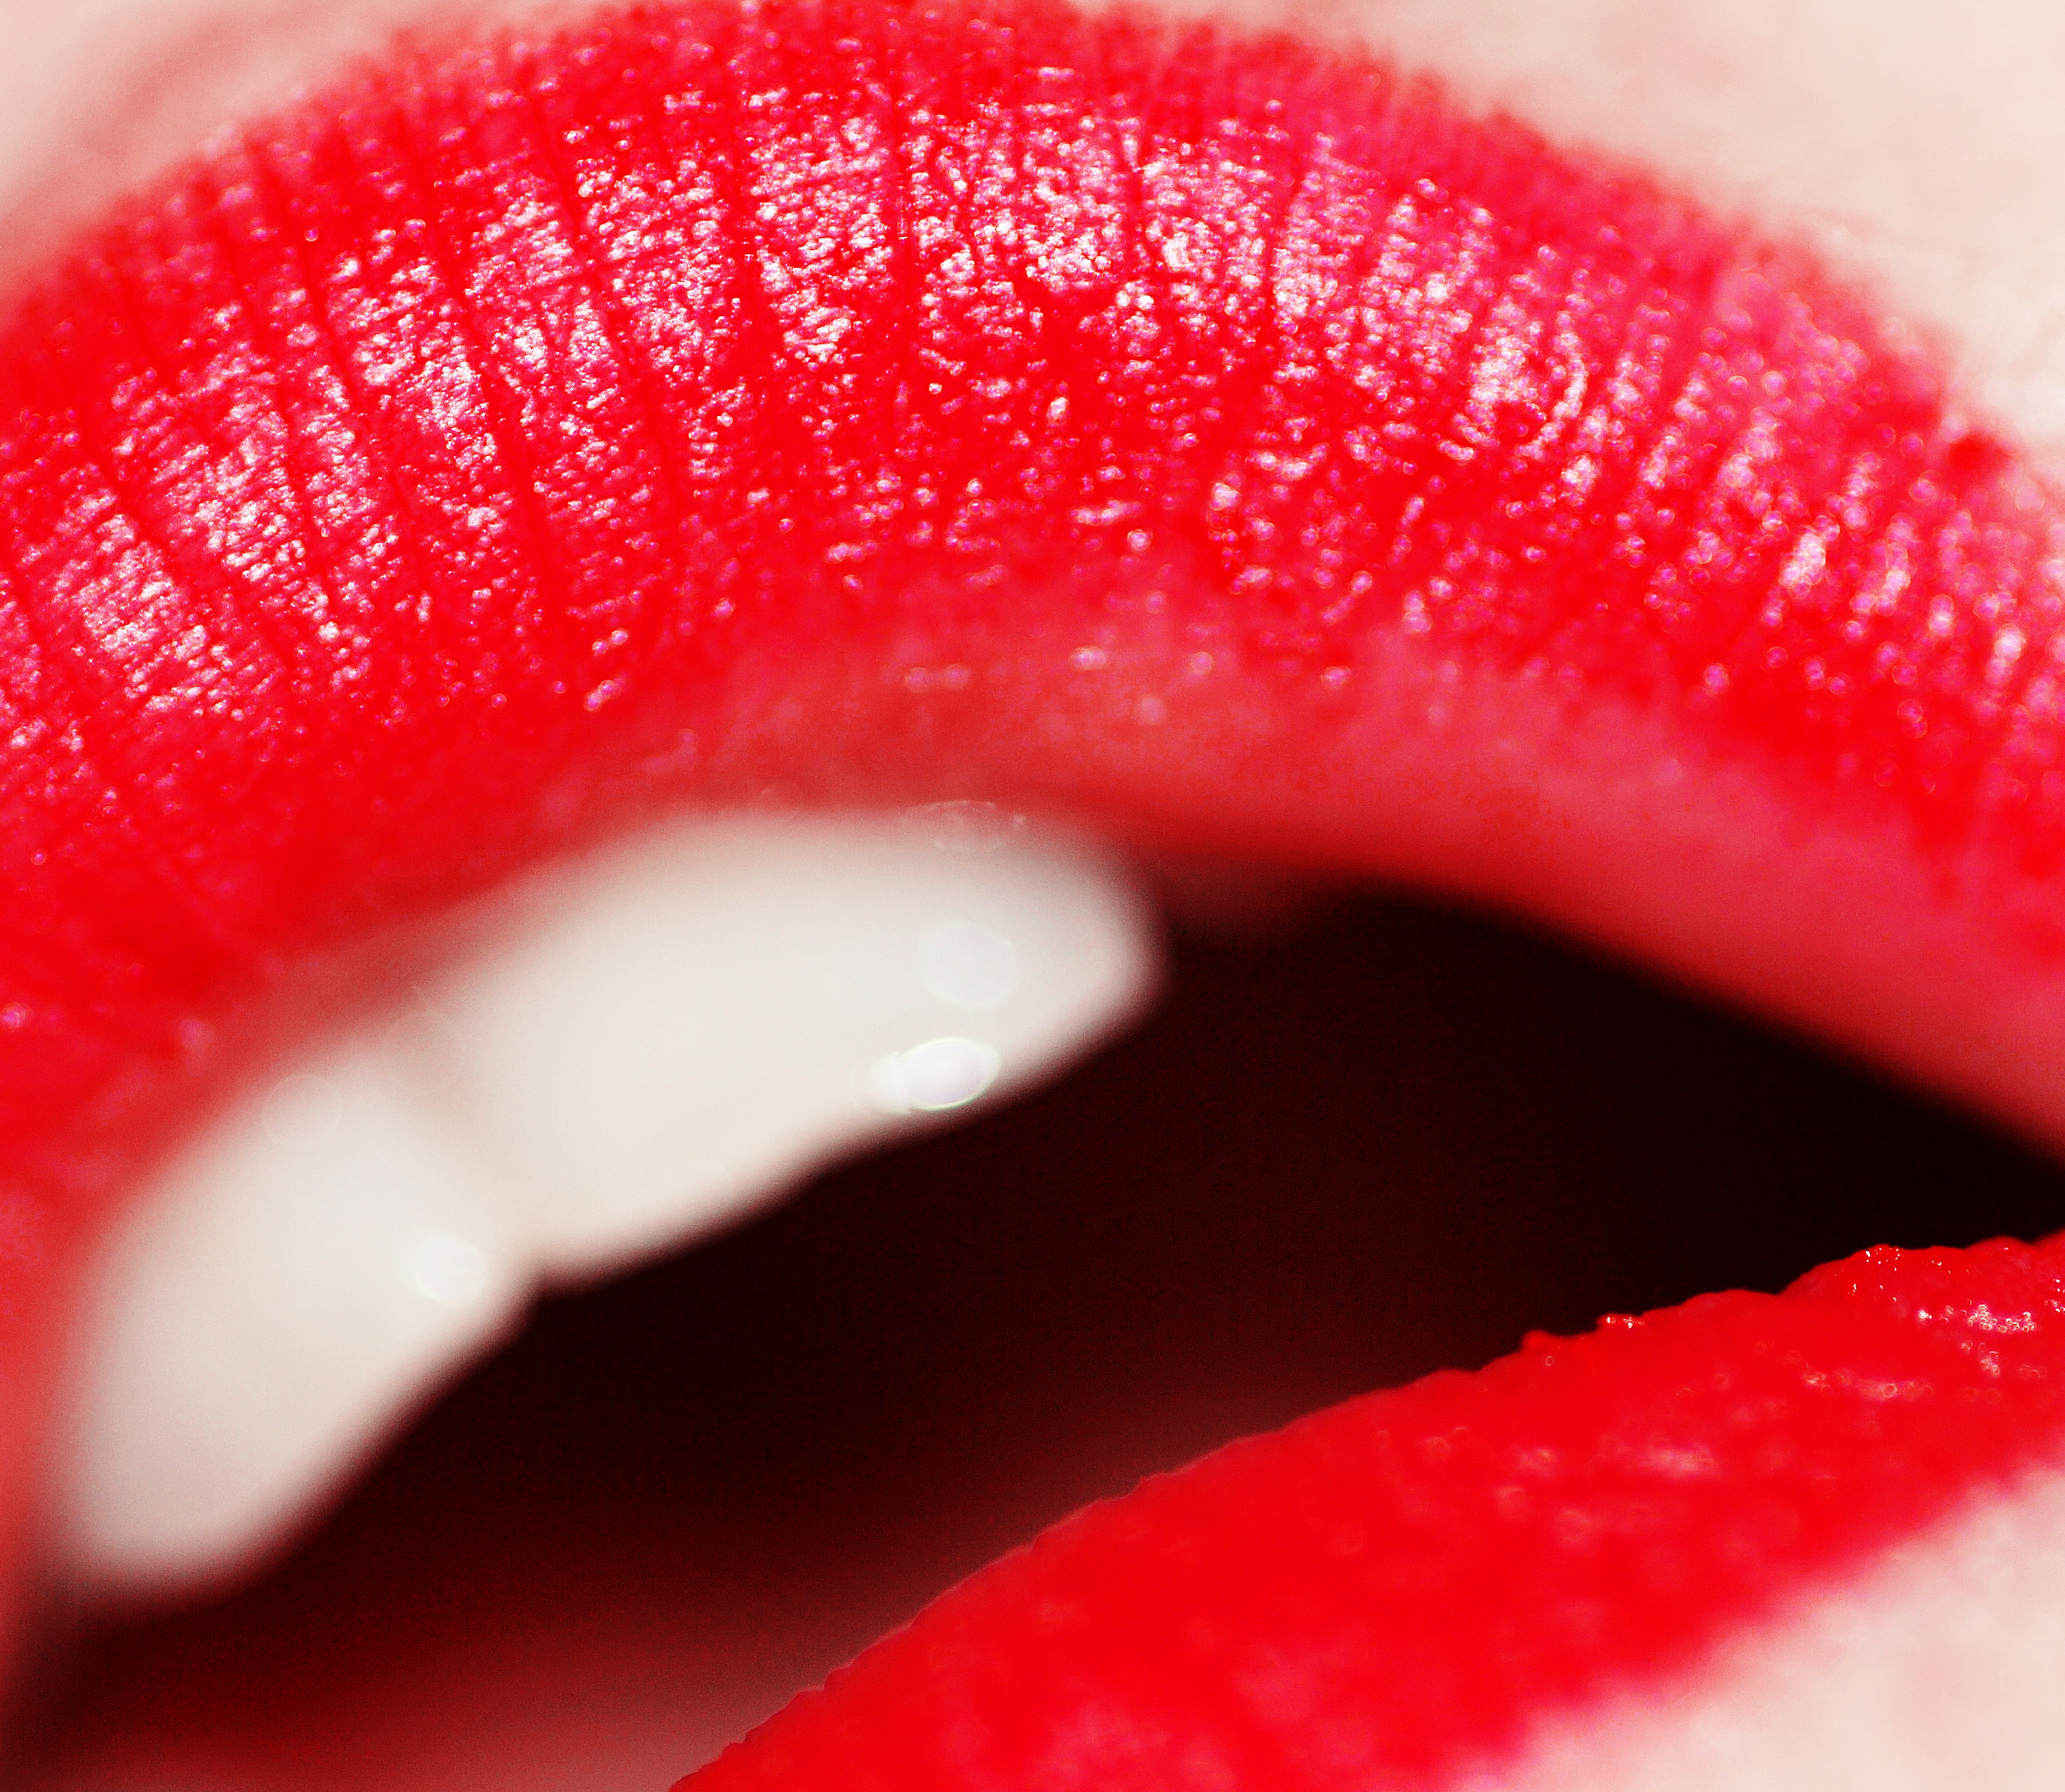 File:Red lipstick (photo by weglet).jpg